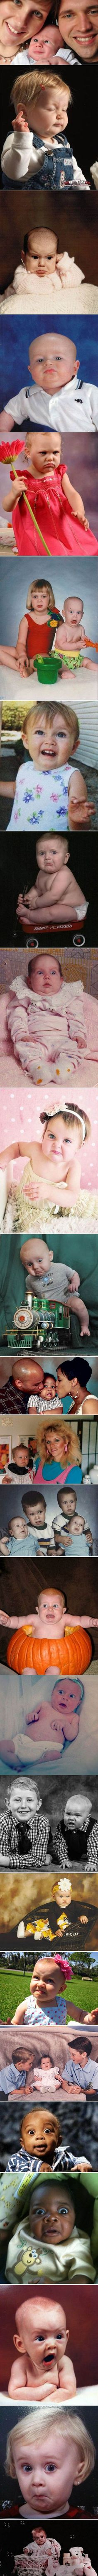 24 Funny Baby Photographs That Were Taken At The Perfectly Wrong Time funny lol fail humor funny pictures funny kids fails hysterical funny images. The last one is just perfect Haha Funny, Funny Cute, Funny Memes, Funny Stuff, Super Funny, Kiss Funny, Scary Funny, Videos Funny, Creepy